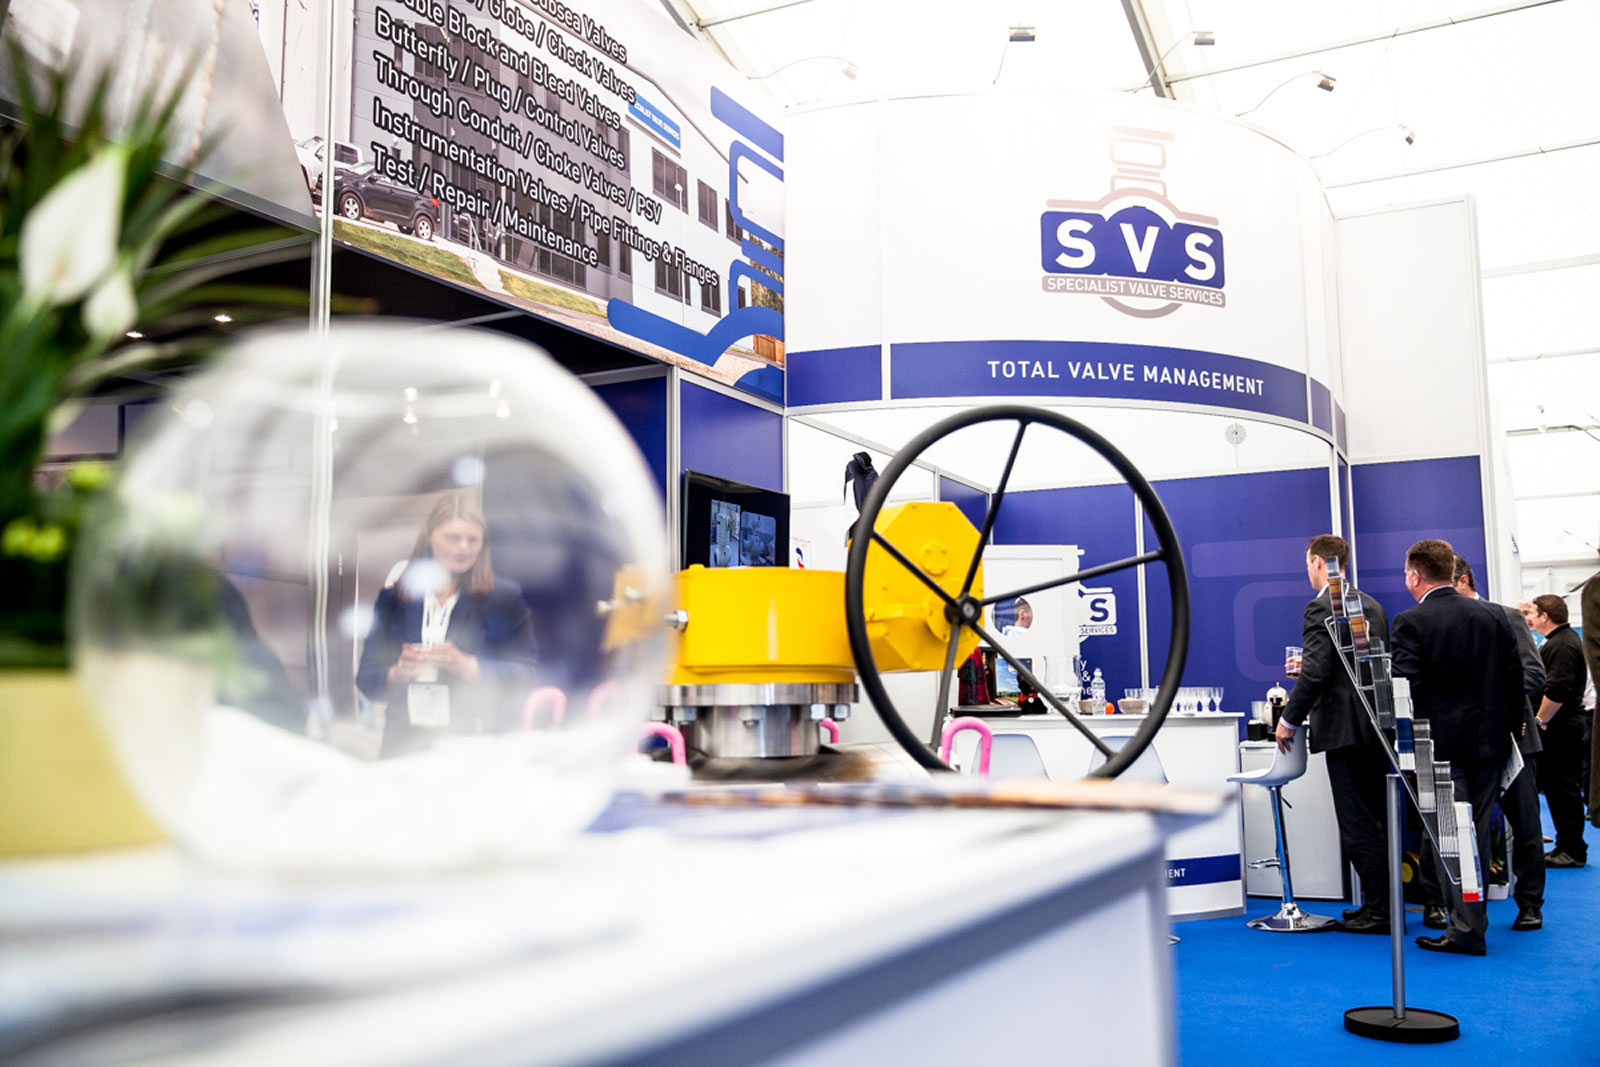 SVS Exhibit at Offshore Europe 2015-image-6